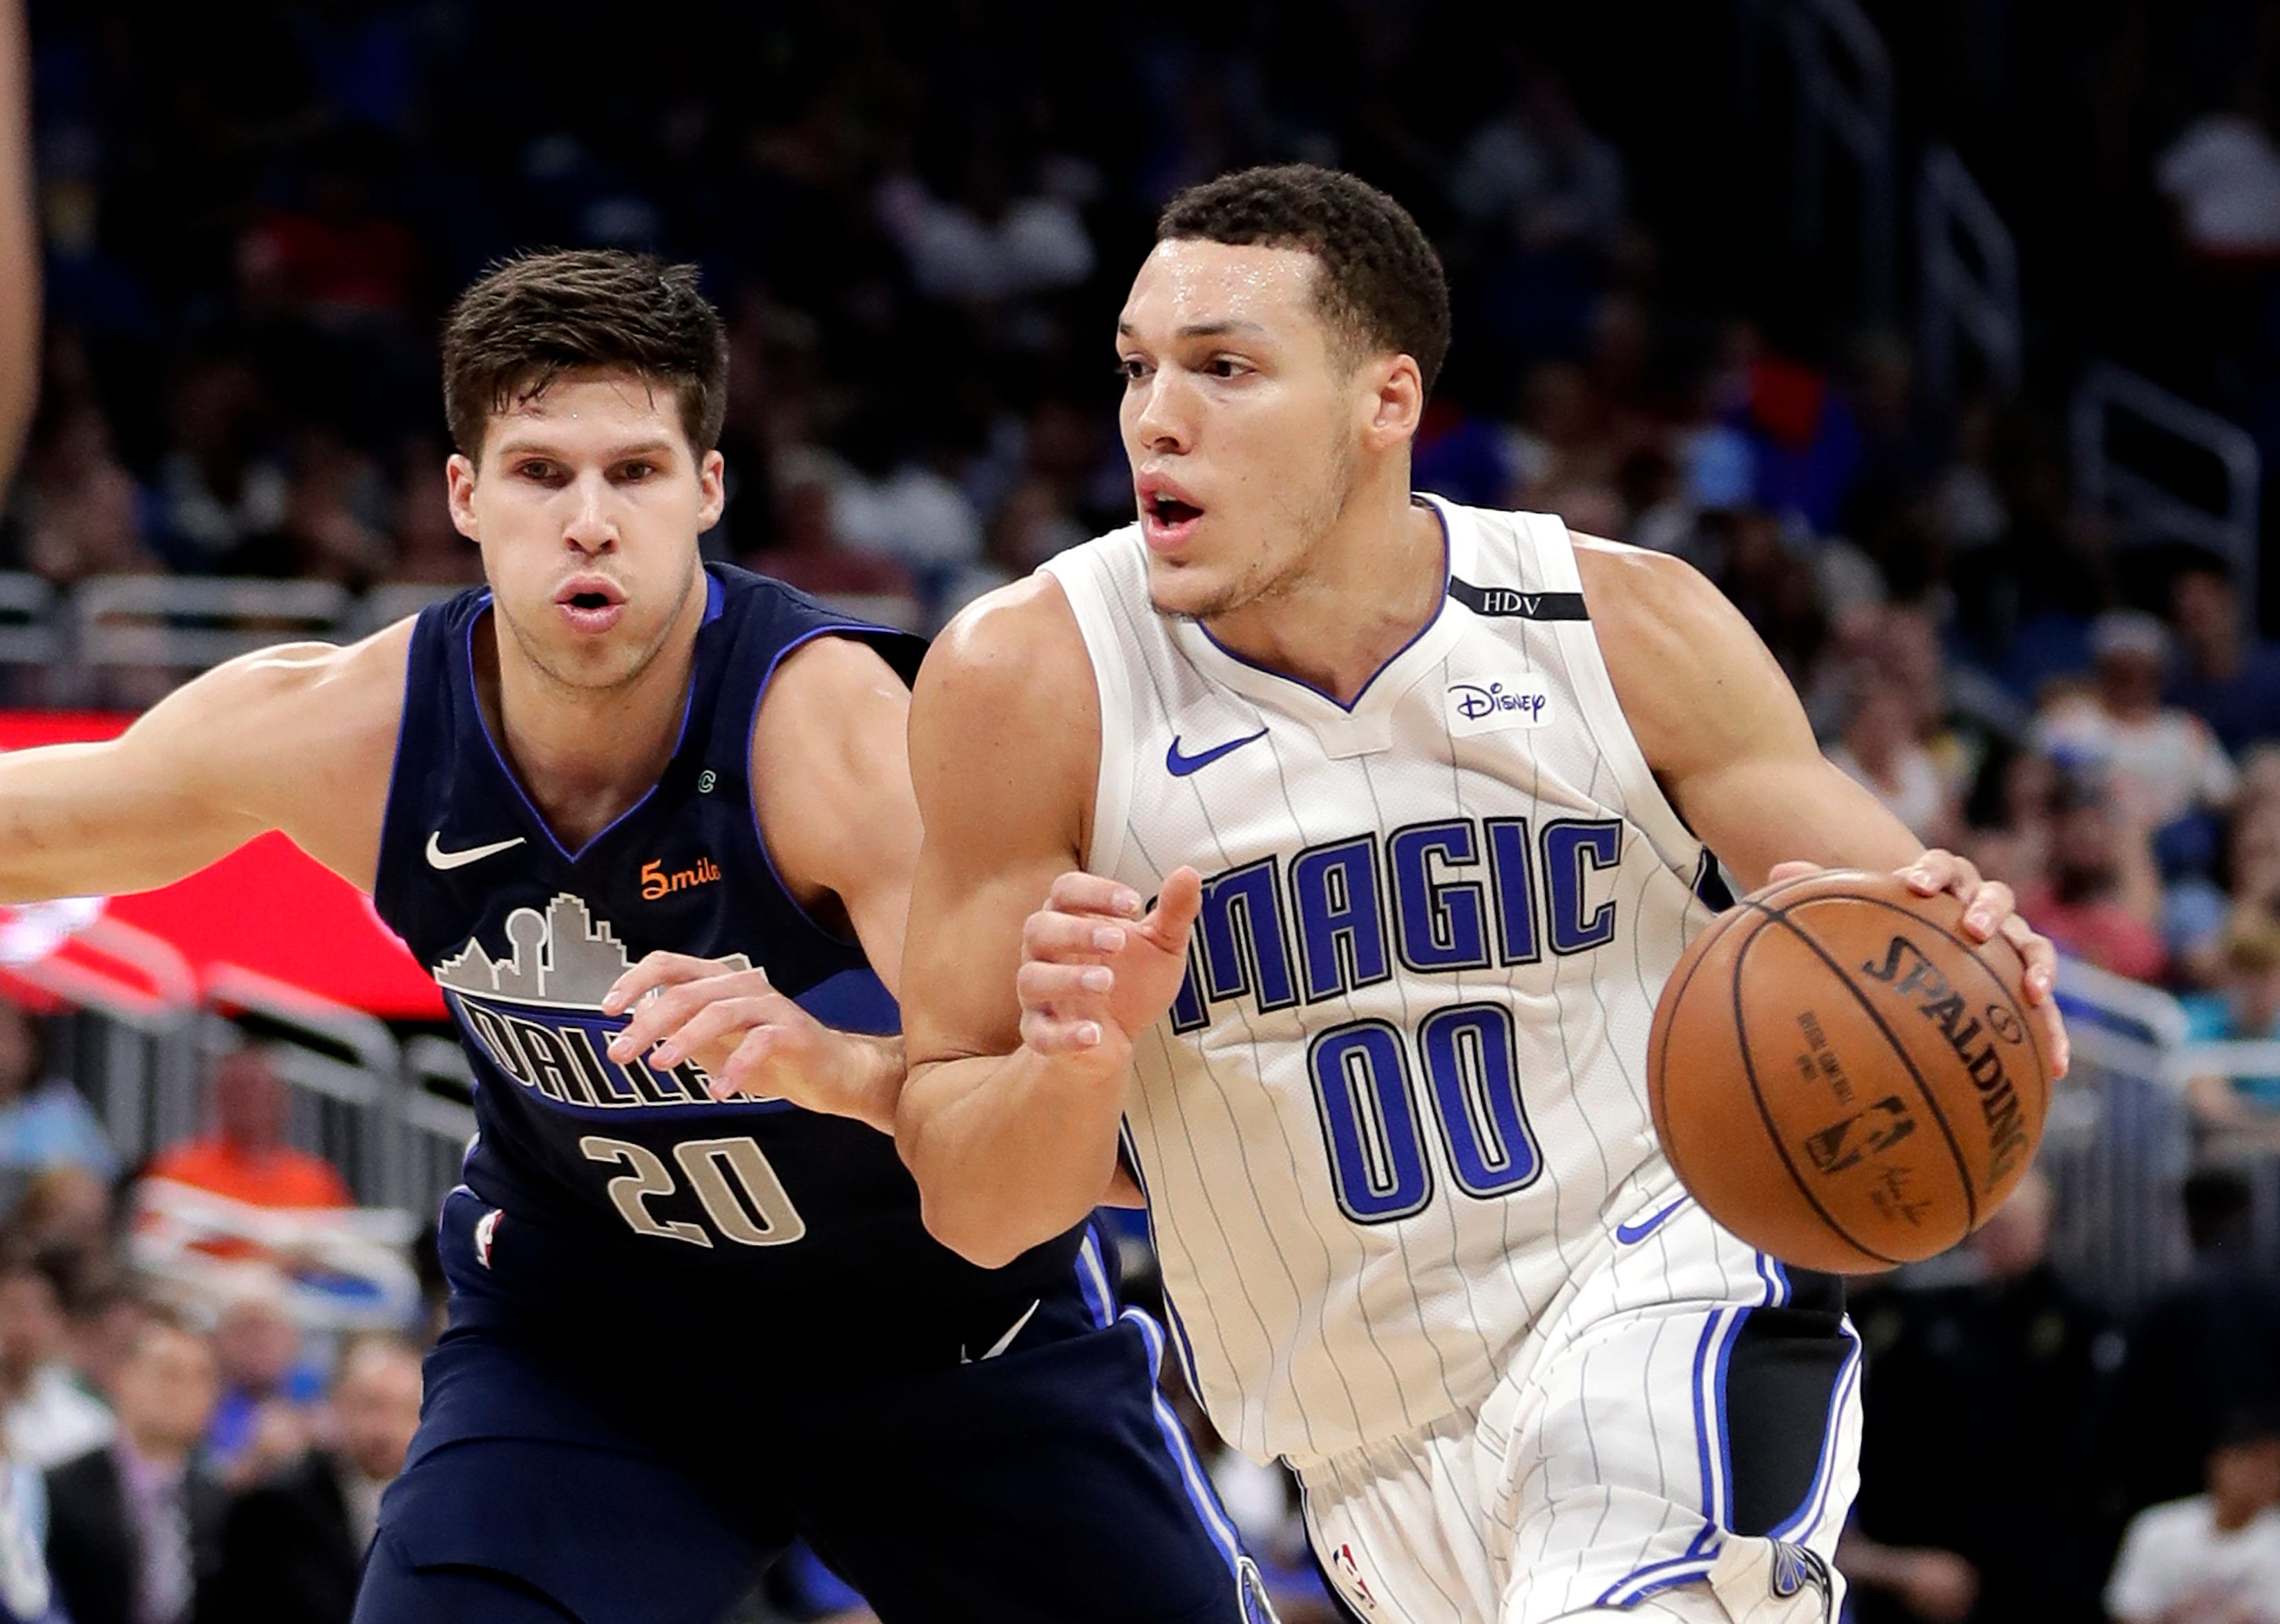 http   www.detroitnews.com picture-gallery sports nba 2018 07 13 big3 ... f9fe25985